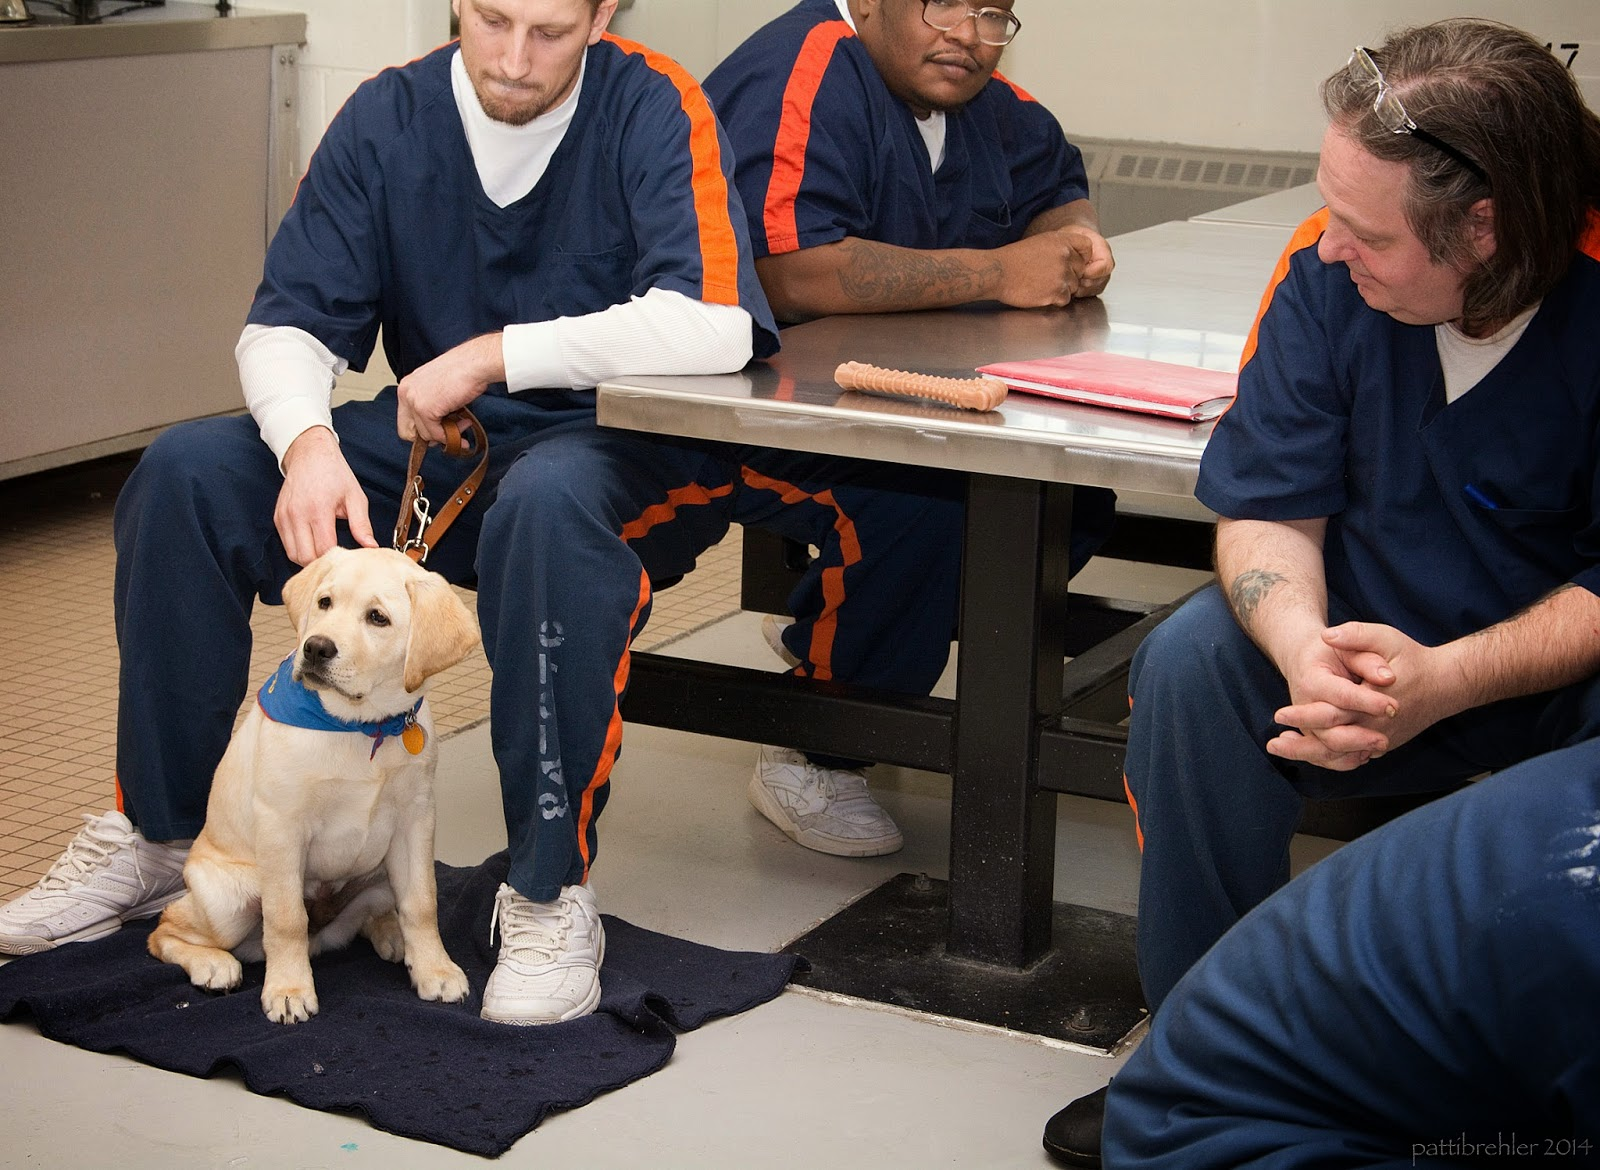 "A yellow lab puppy is sitting on a grey ""mat"" between the feet of a man who is sitting on a lunchroom stool. The man is holding the puppy's leash in his left hand and his left forearm is resting on the metal table top. The man's right hand is reaching down to pet the pup's head. The puppy is wearing a blue bandana. The man is looking down at the pup. Behind the man is an african american man sitting at the table. He is wearing glasses and has his forearms resting on the table. On the right side of the picture is a third man who is sitting facing out from the end of the table, his forearms are resting on his thighs and he is looking over at thepuppy. He has a pair of glasses on the top of his head. There is a dog nylabone and a red folder on the talbe. The men are wearing the blue prison uniforms."